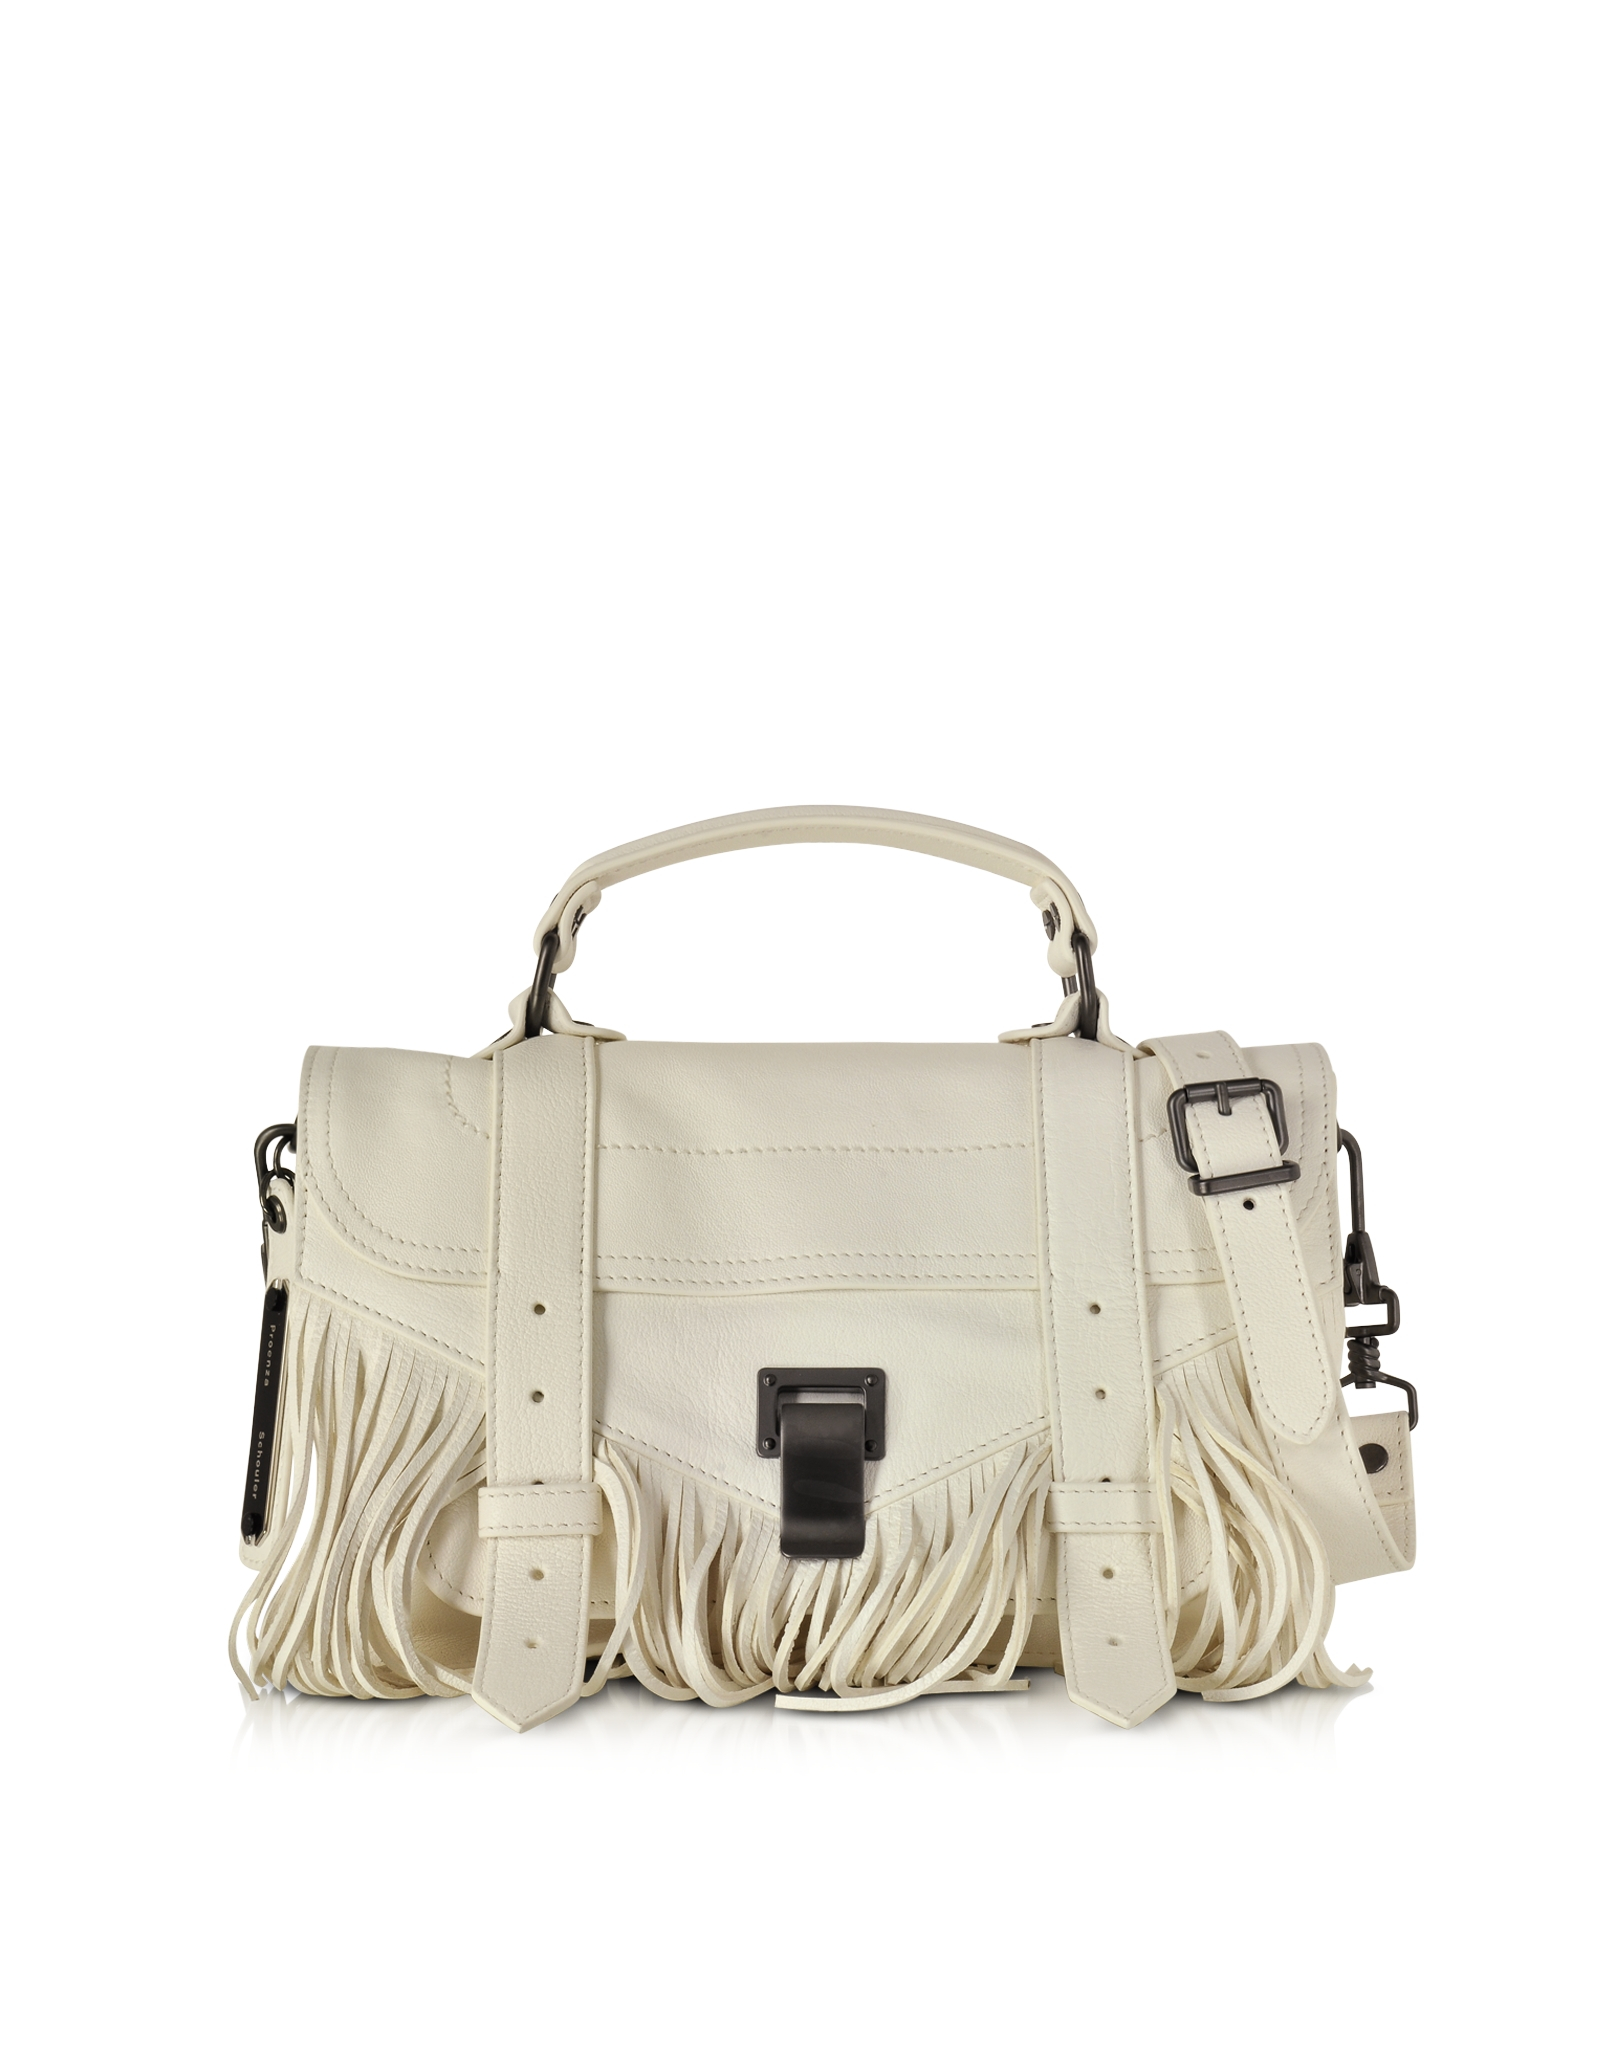 Proenza Schouler Ps1 Medium Saddle | Proenza Bag Price | Ps1 Bag